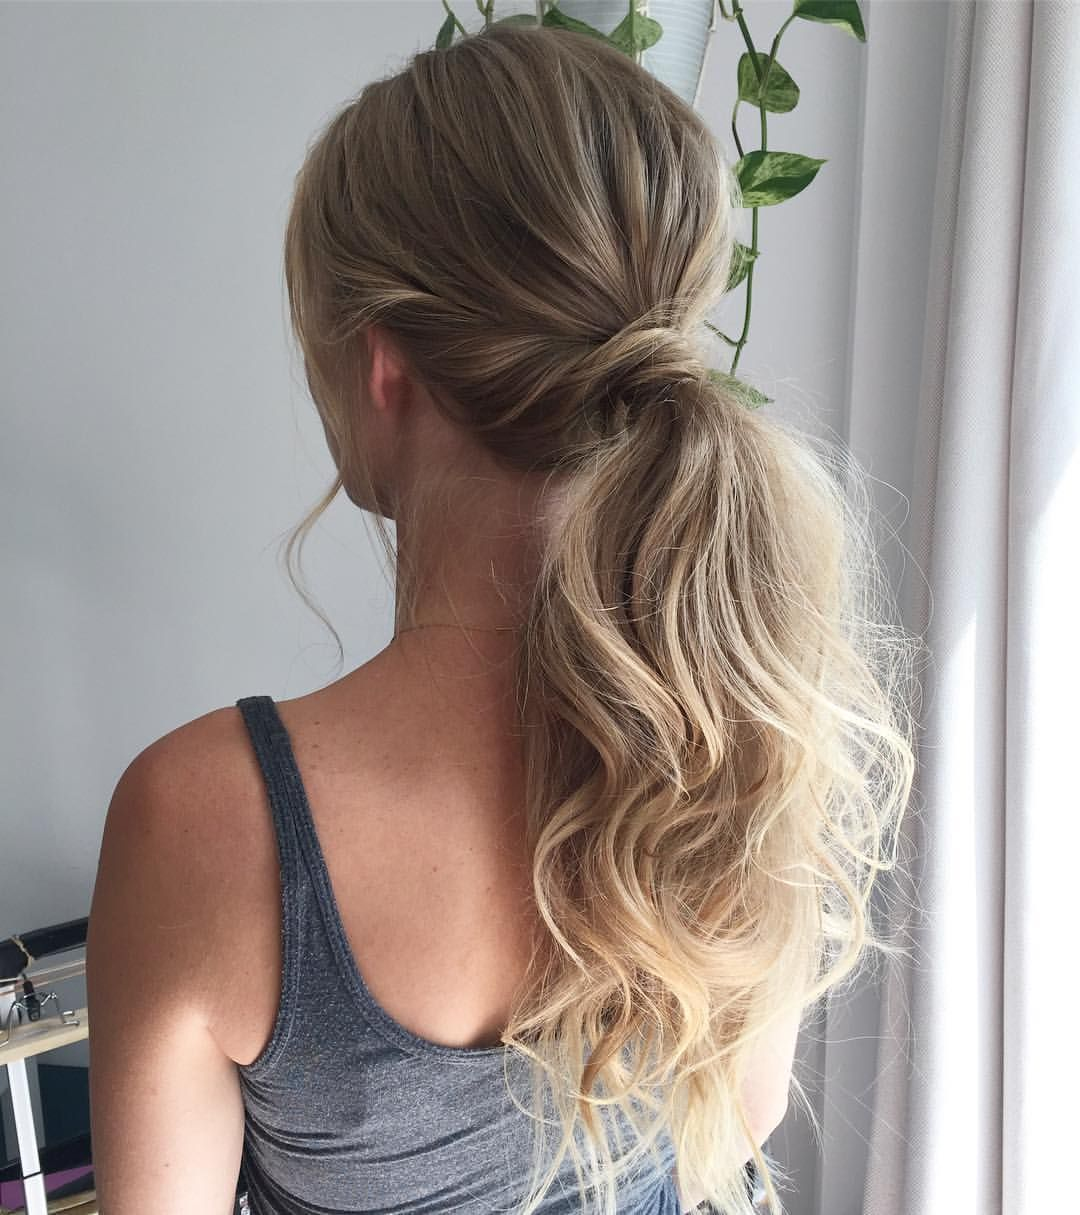 Toronto wedding hair on instagram ucat your trial we will try at